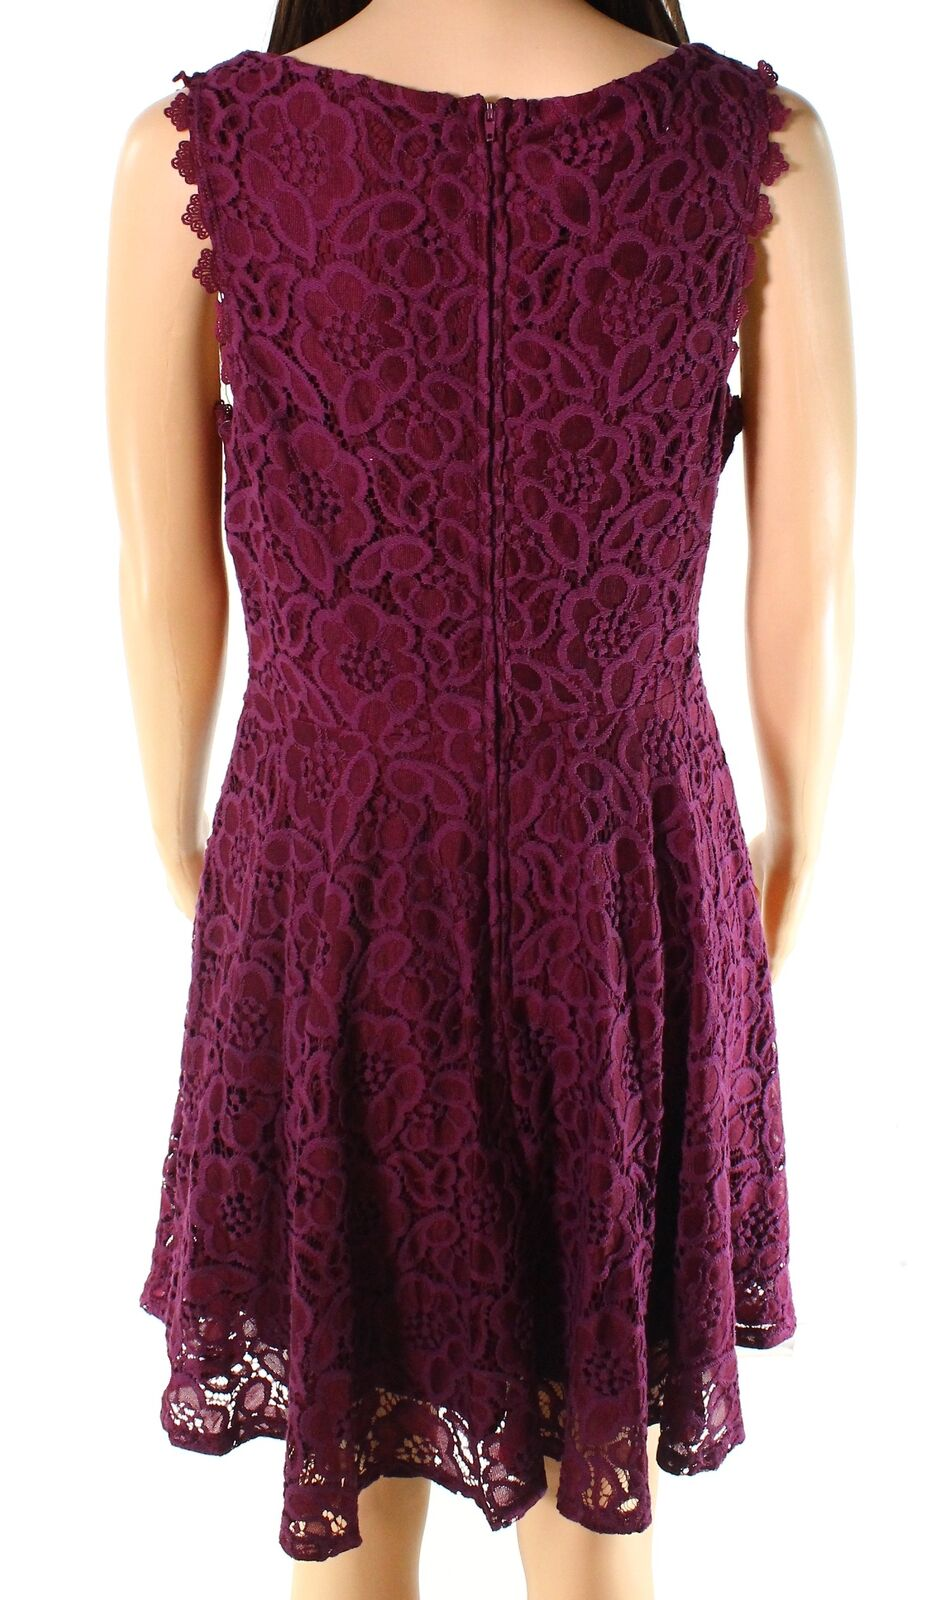 New-City-Triangles-NEW-Red-Plum-Size-9-Junior-A-Line-Floral-Lace-Dress-52-819 thumbnail 2